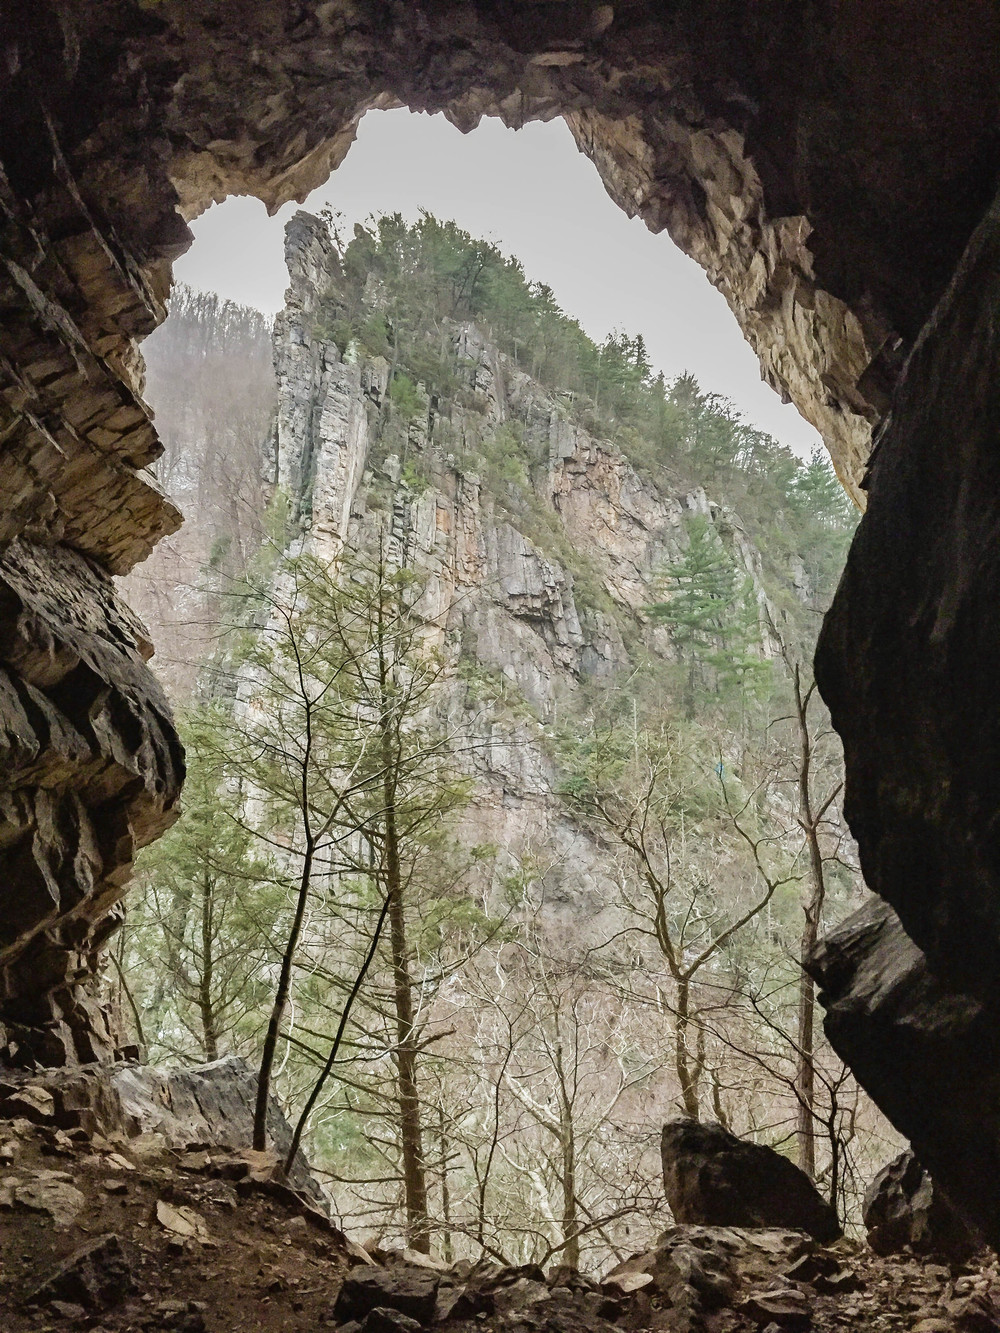 Cave at Seneca Rocks Trail (east side)